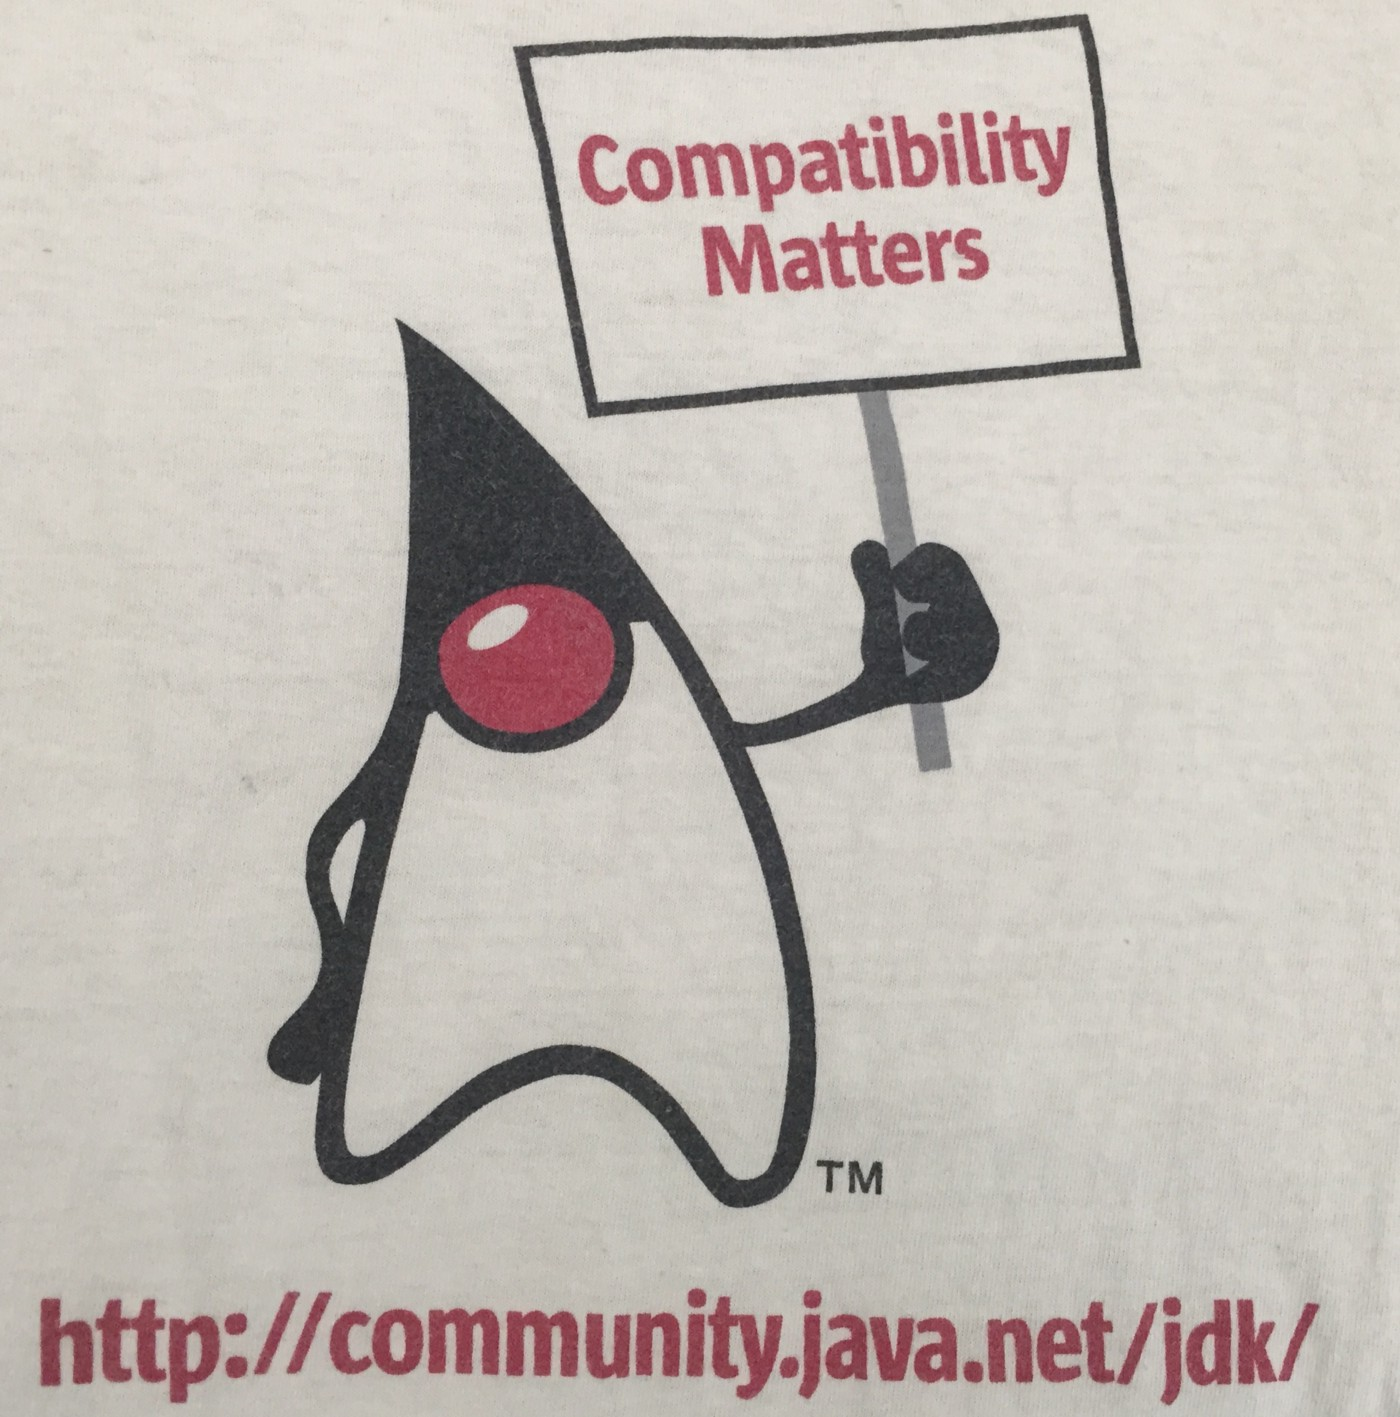 Why is a Java guy so excited about Node js and JavaScript?